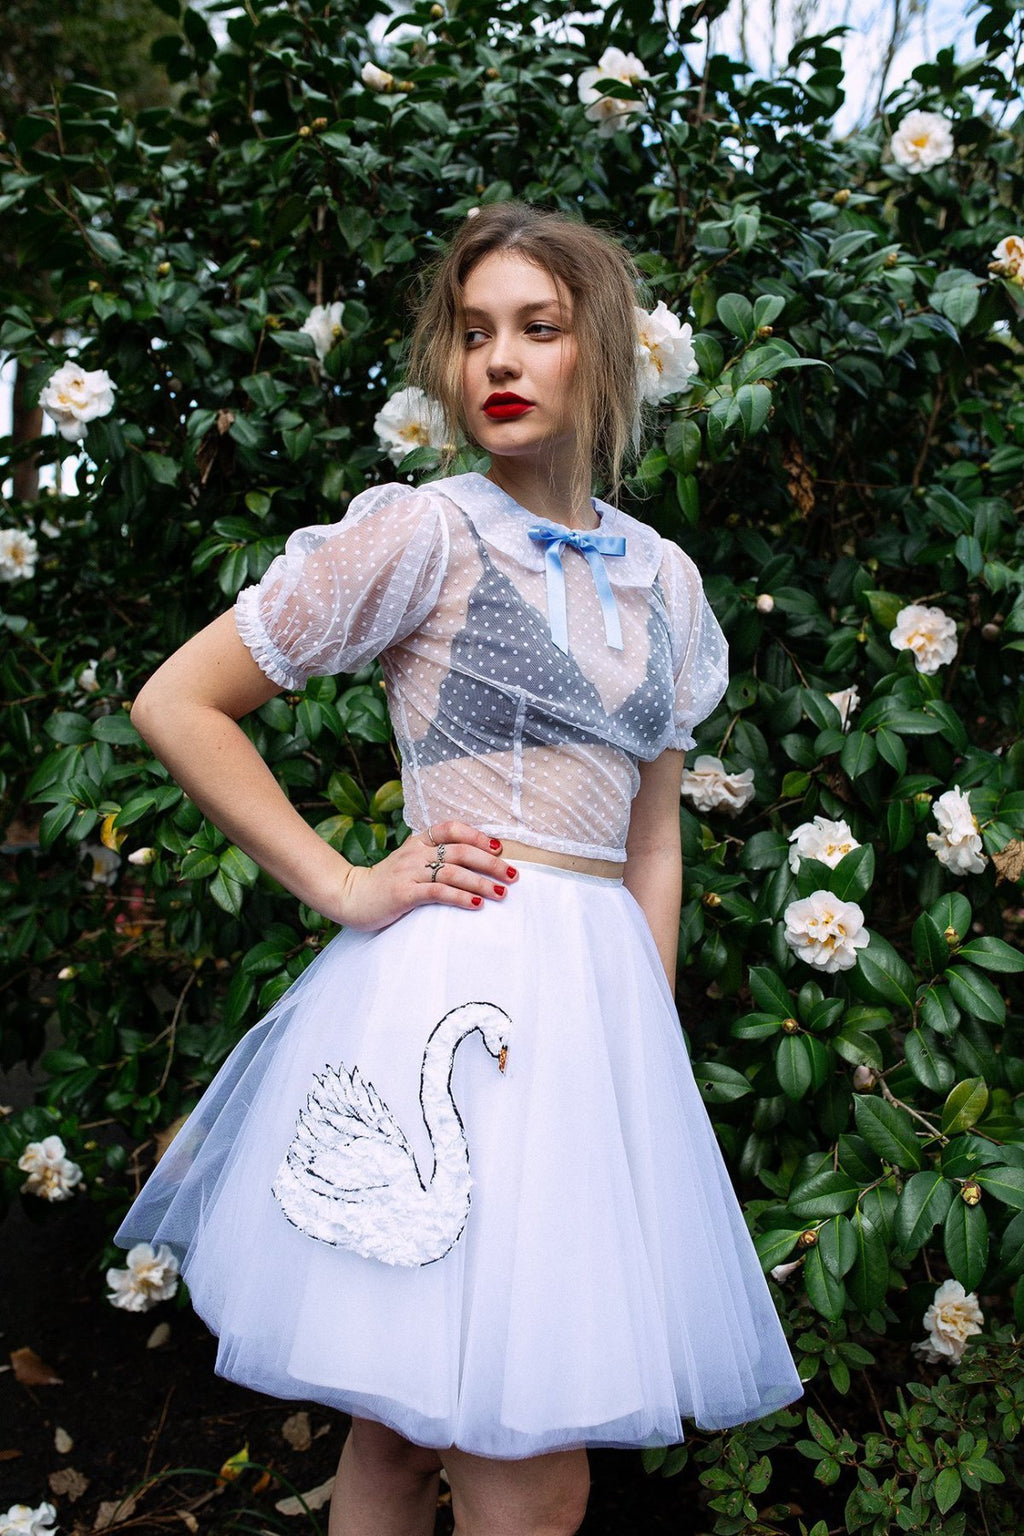 For Love Skirt Skirts The Fashion Advocate ethical Australian fashion designer boutique Melbourne sustainable clothes